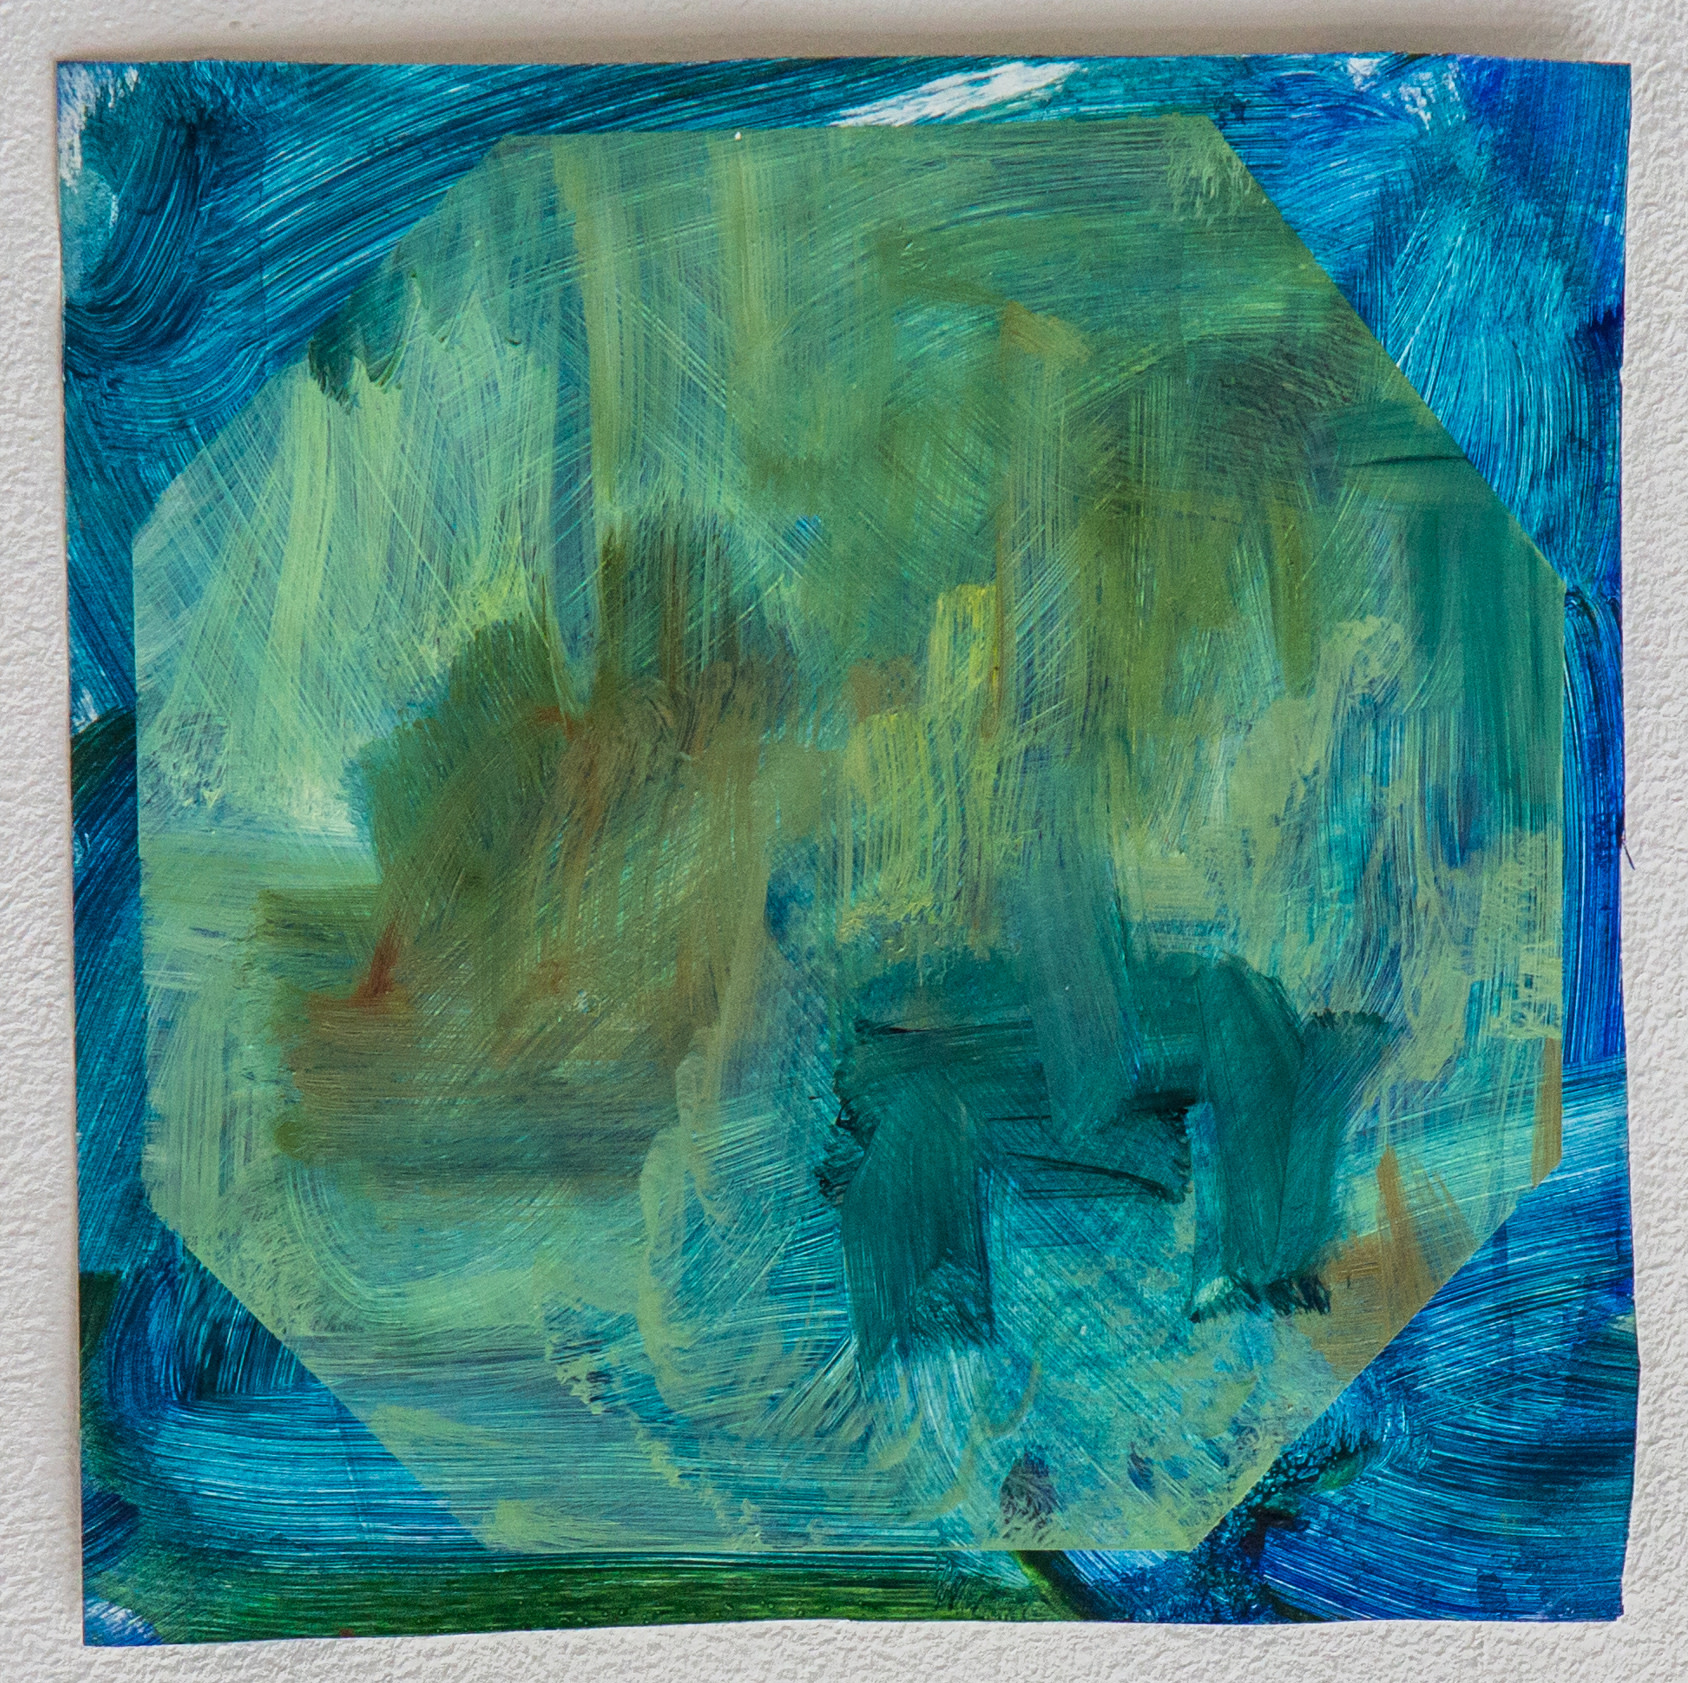 """<span class=""""link fancybox-details-link""""><a href=""""/artists/118-kate-dunn/works/2843/"""">View Detail Page</a></span><div class=""""artist""""><strong>Kate Dunn</strong></div> <div class=""""title""""><em>The Still Waters I Wrap My Lips</em>, 2018</div> <div class=""""medium"""">Acrylic Paint and Oil Paint on Paper</div> <div class=""""dimensions"""">28.2 x 28.2 cm<br /> 11 1/8 x 11 1/8 in.</div><div class=""""copyright_line"""">Copyright The Artist</div>"""